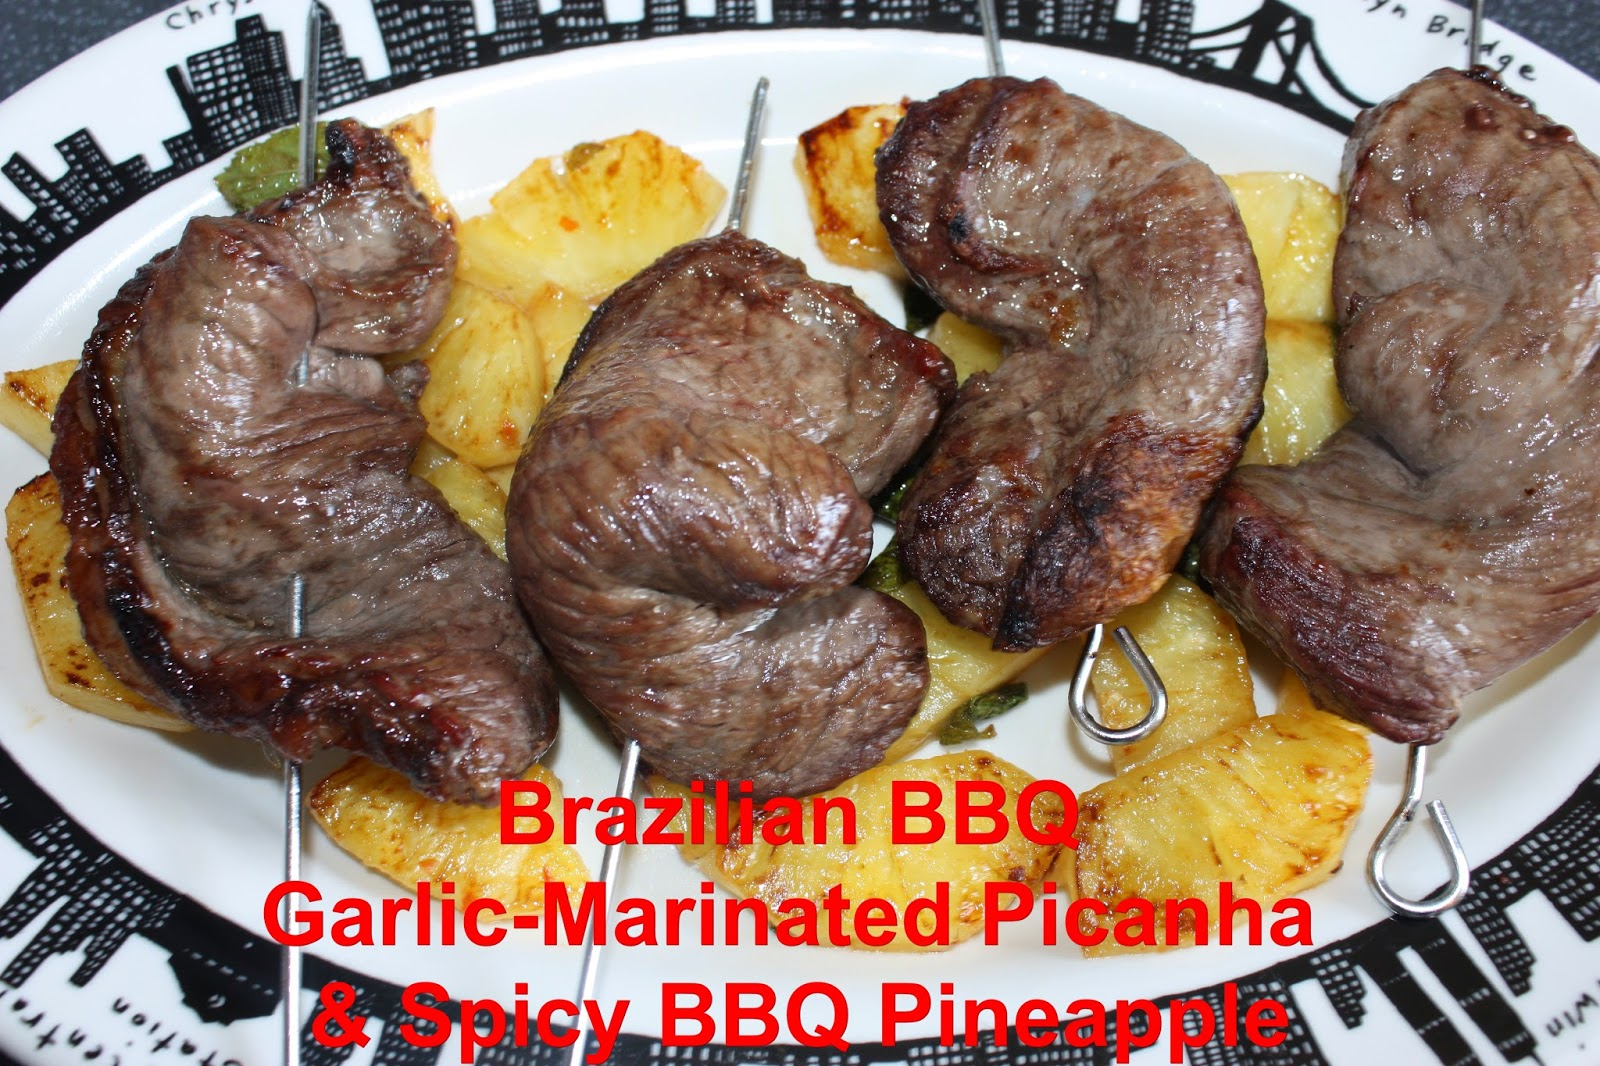 Brazilian BBQ Garlic-Marinated Picanha & Spicy BBQ Pineapple